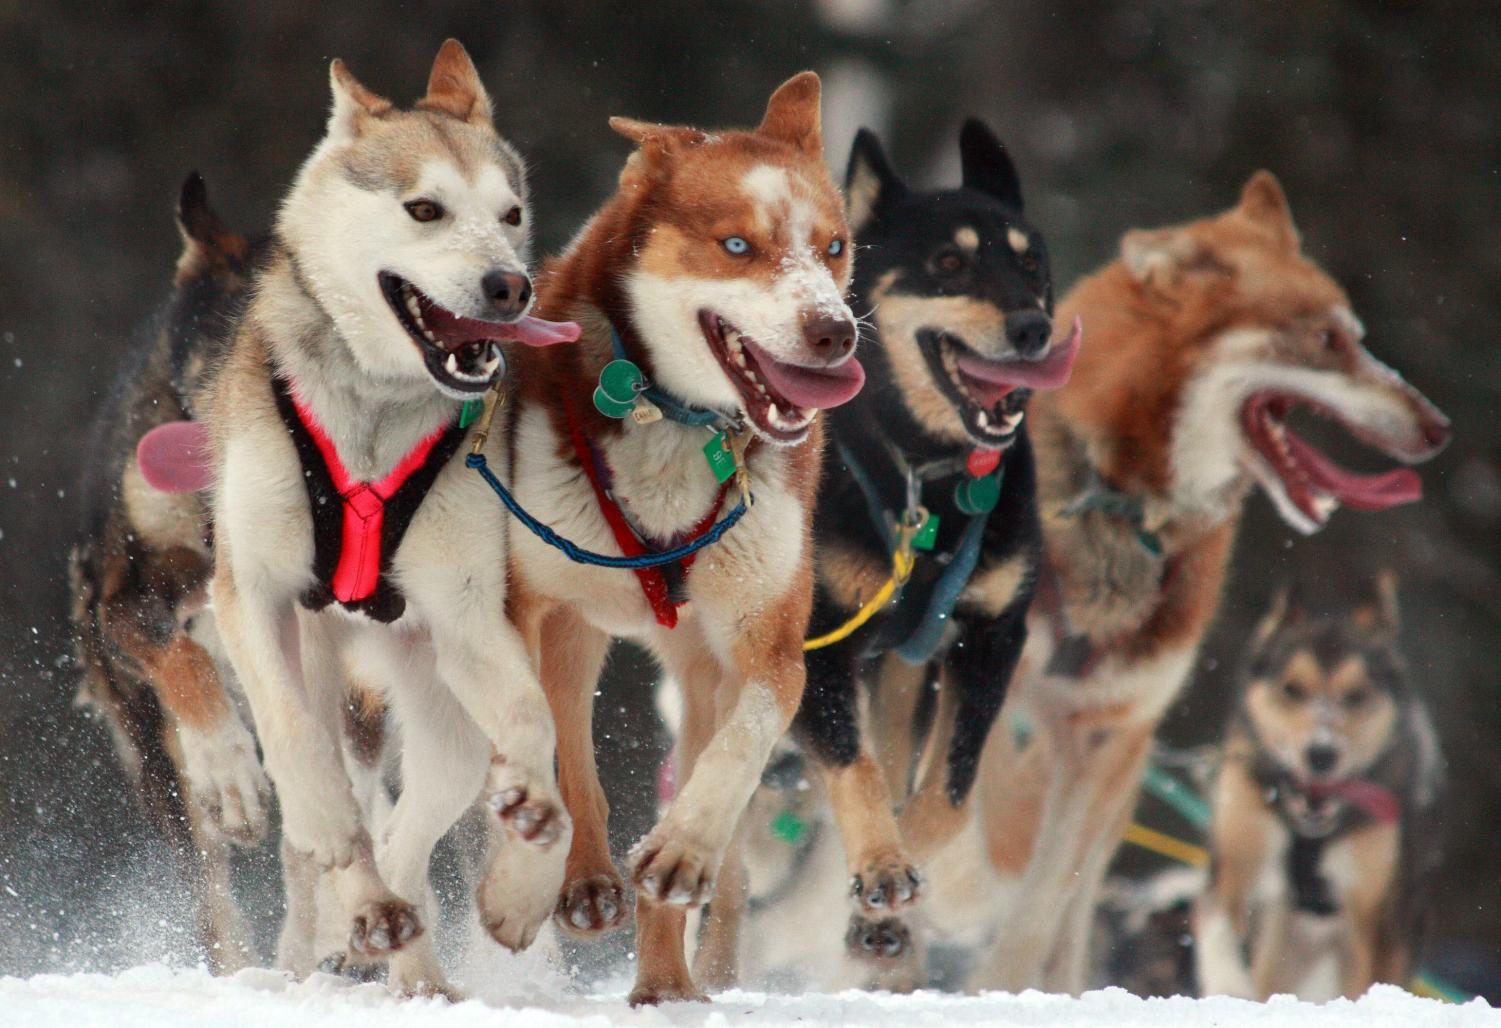 Mushing down the trail, these dogs begin the 1,135 mile race from Anchorage, Alaska, to Nome, Alaska. On this date back in 1985, Libby Riddles was able to become the first woman to ever win the race.